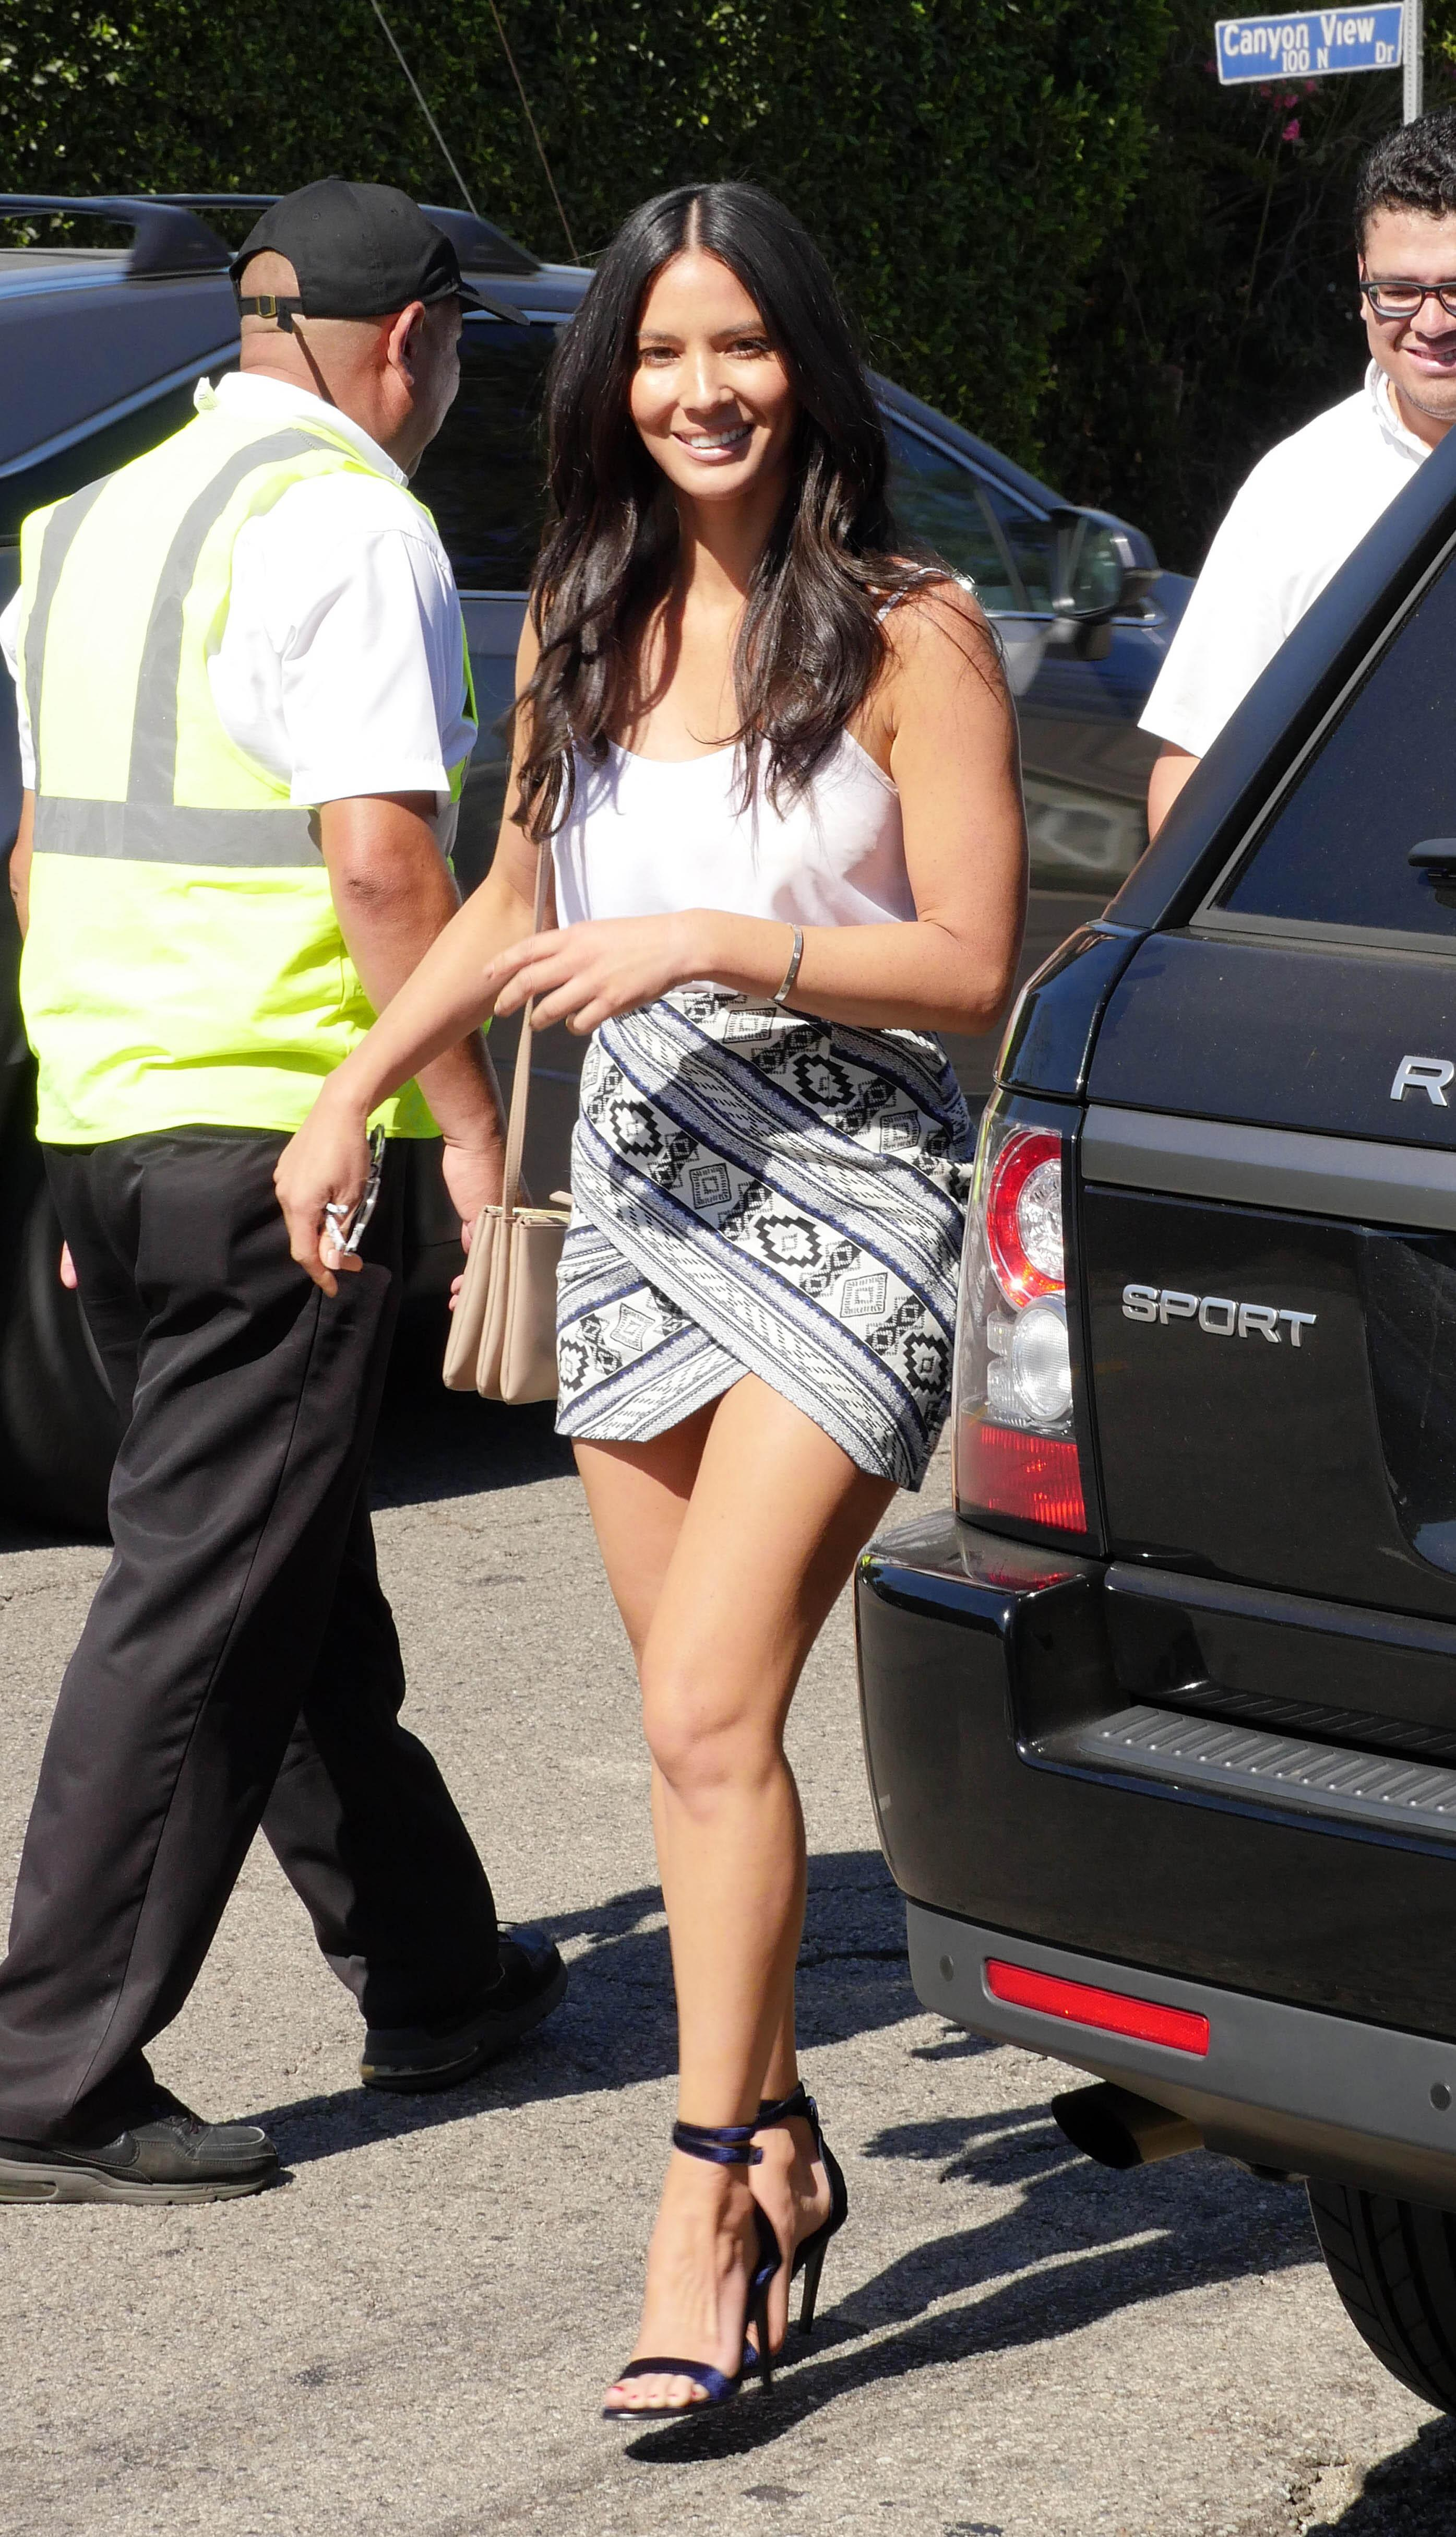 Olivia-munna-feet awesome pictures